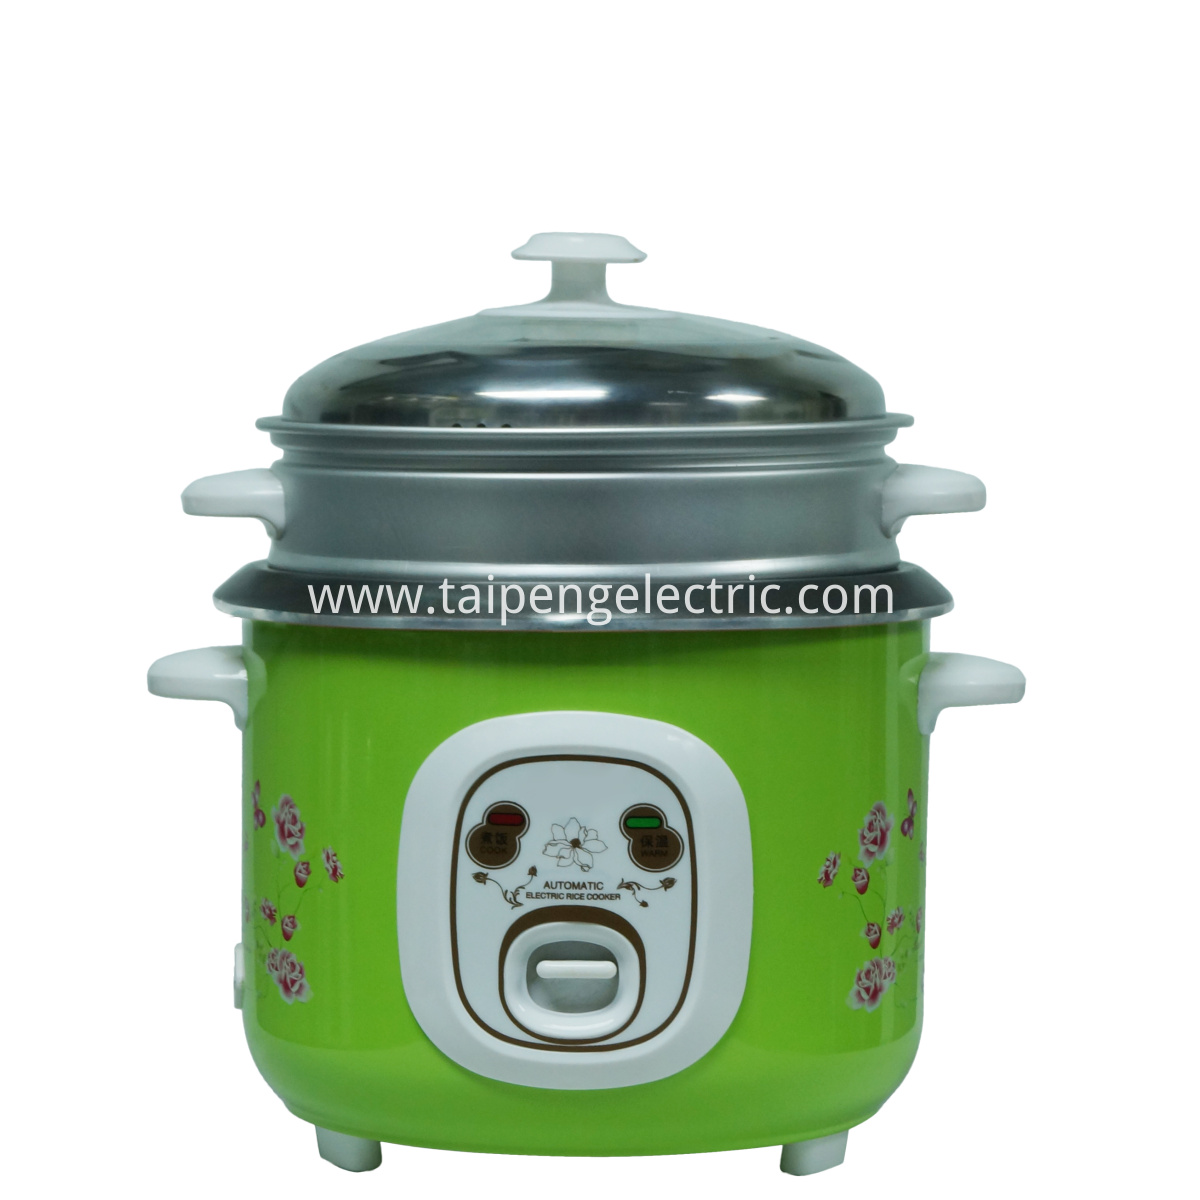 One Person Electrical Rice Cooker